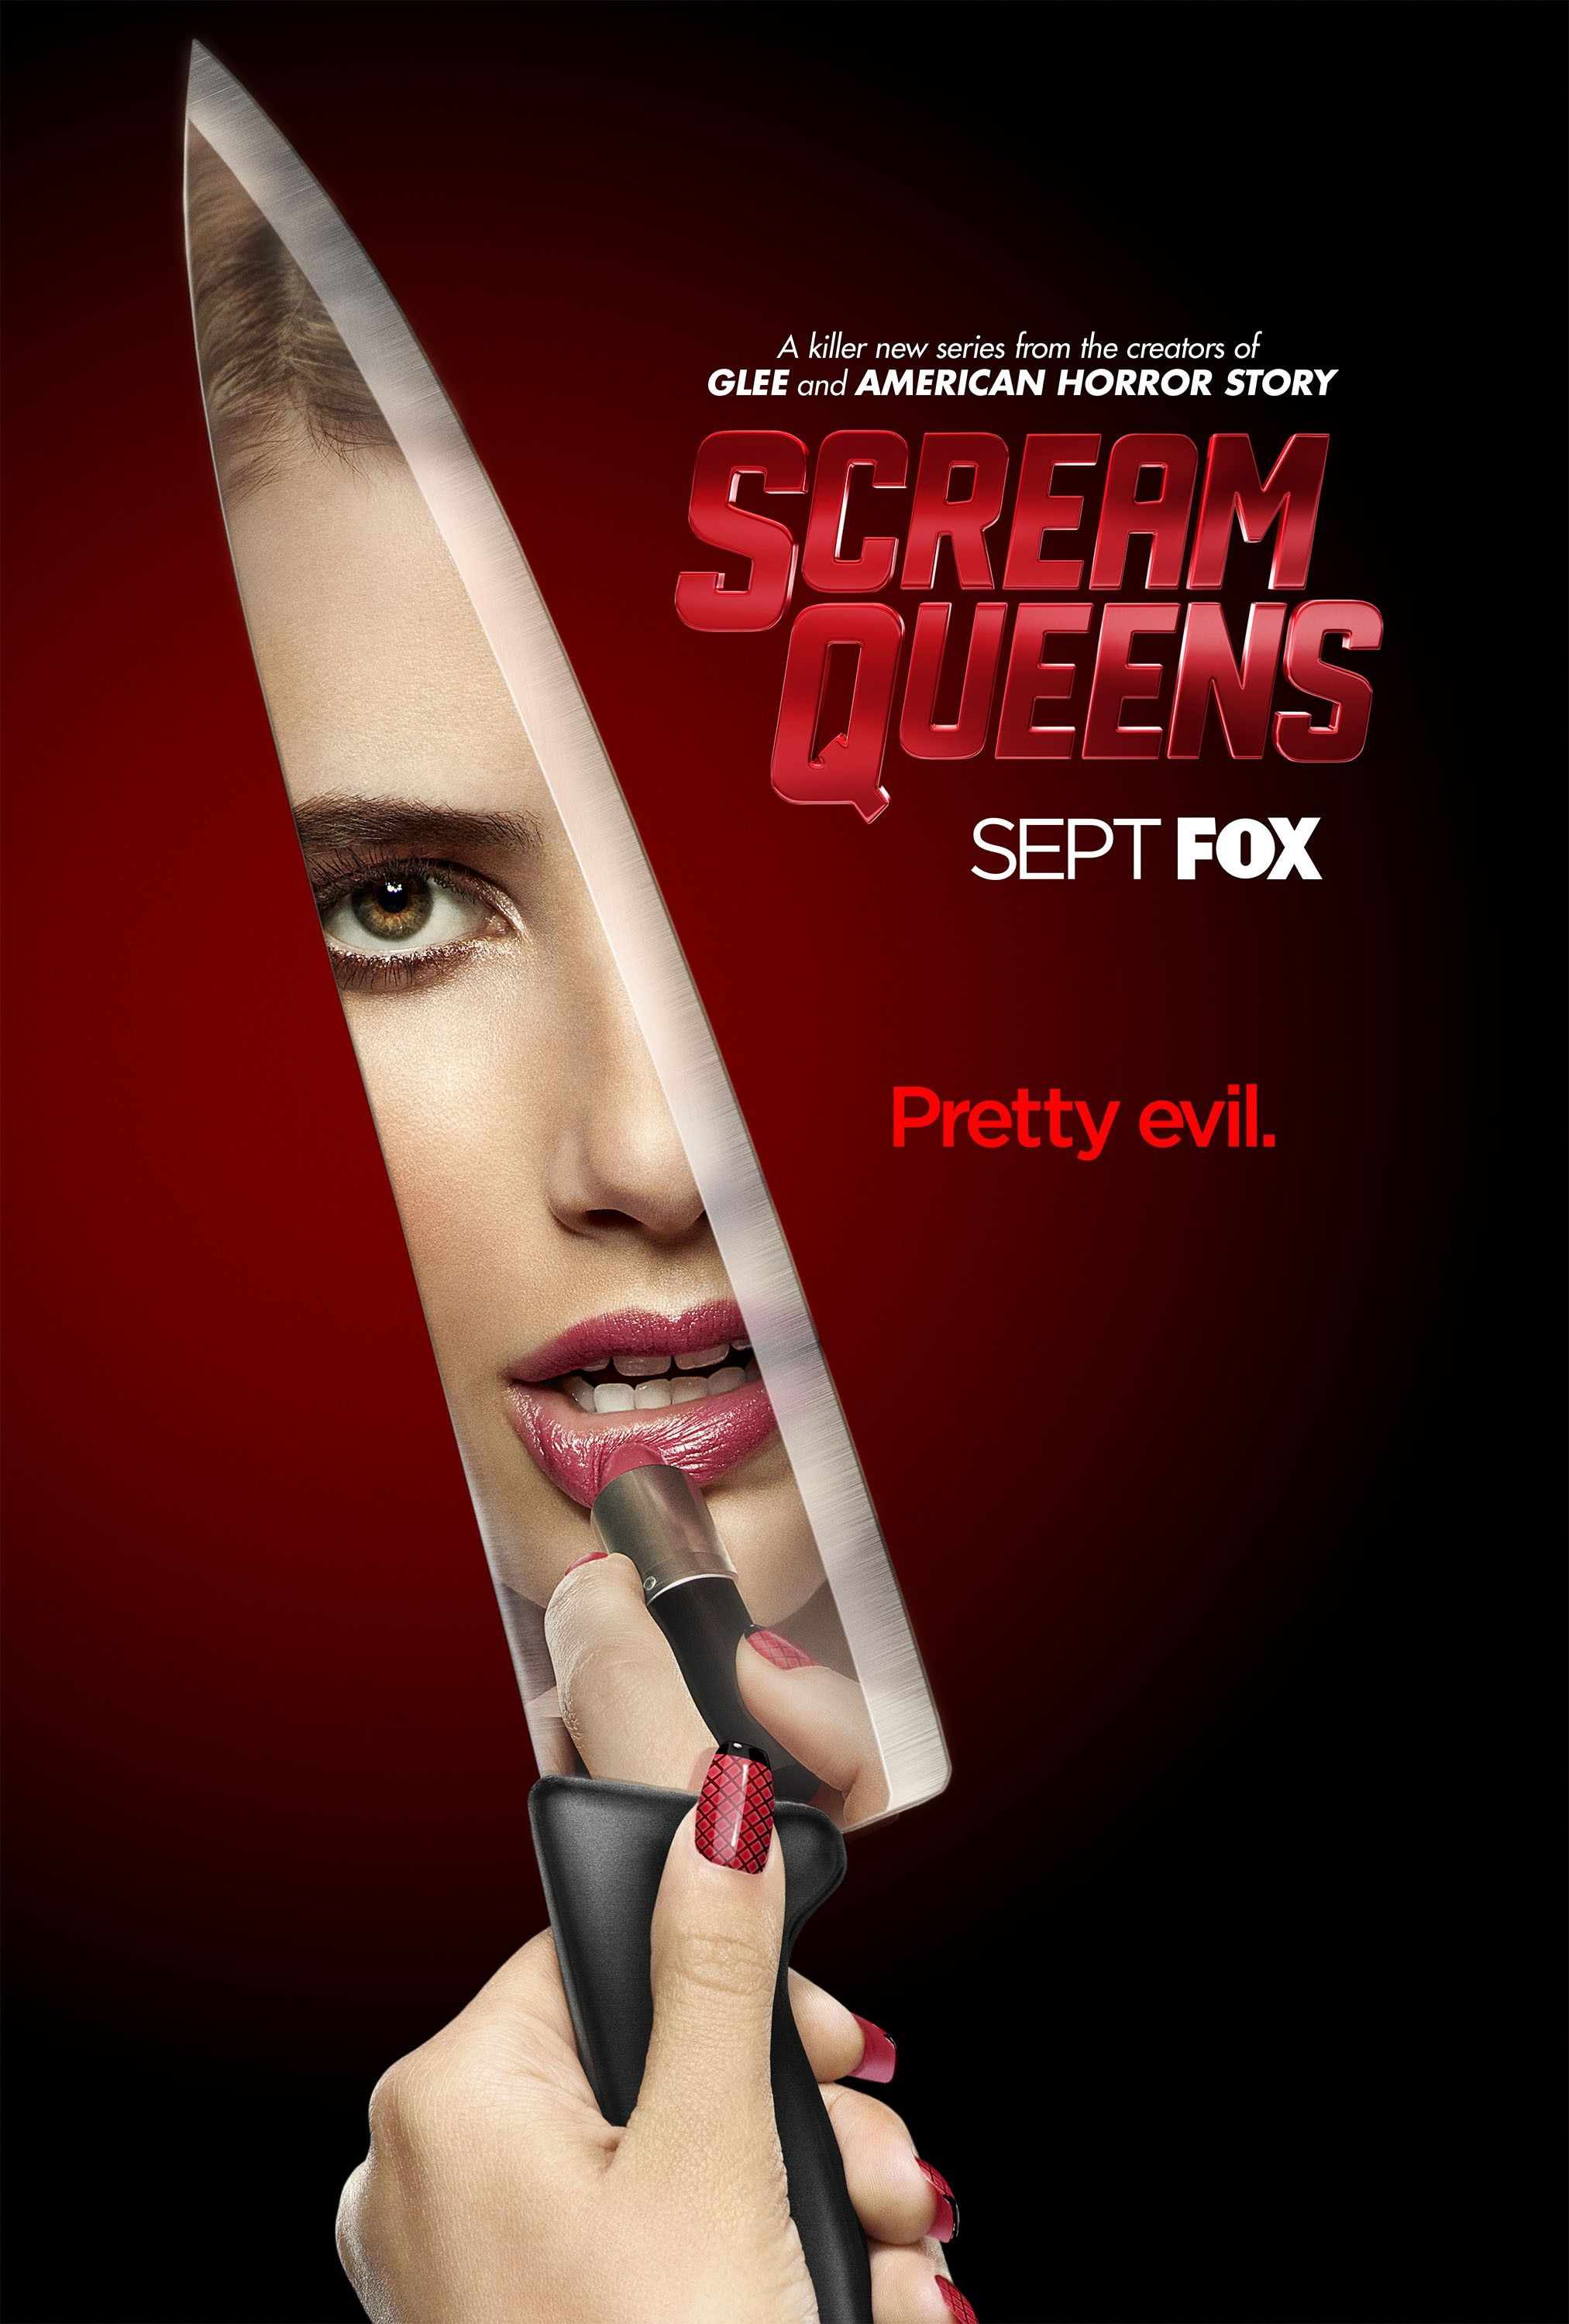 Emma Roberts as Chanel Oberlin. | Posters/Promos | Pinterest ...